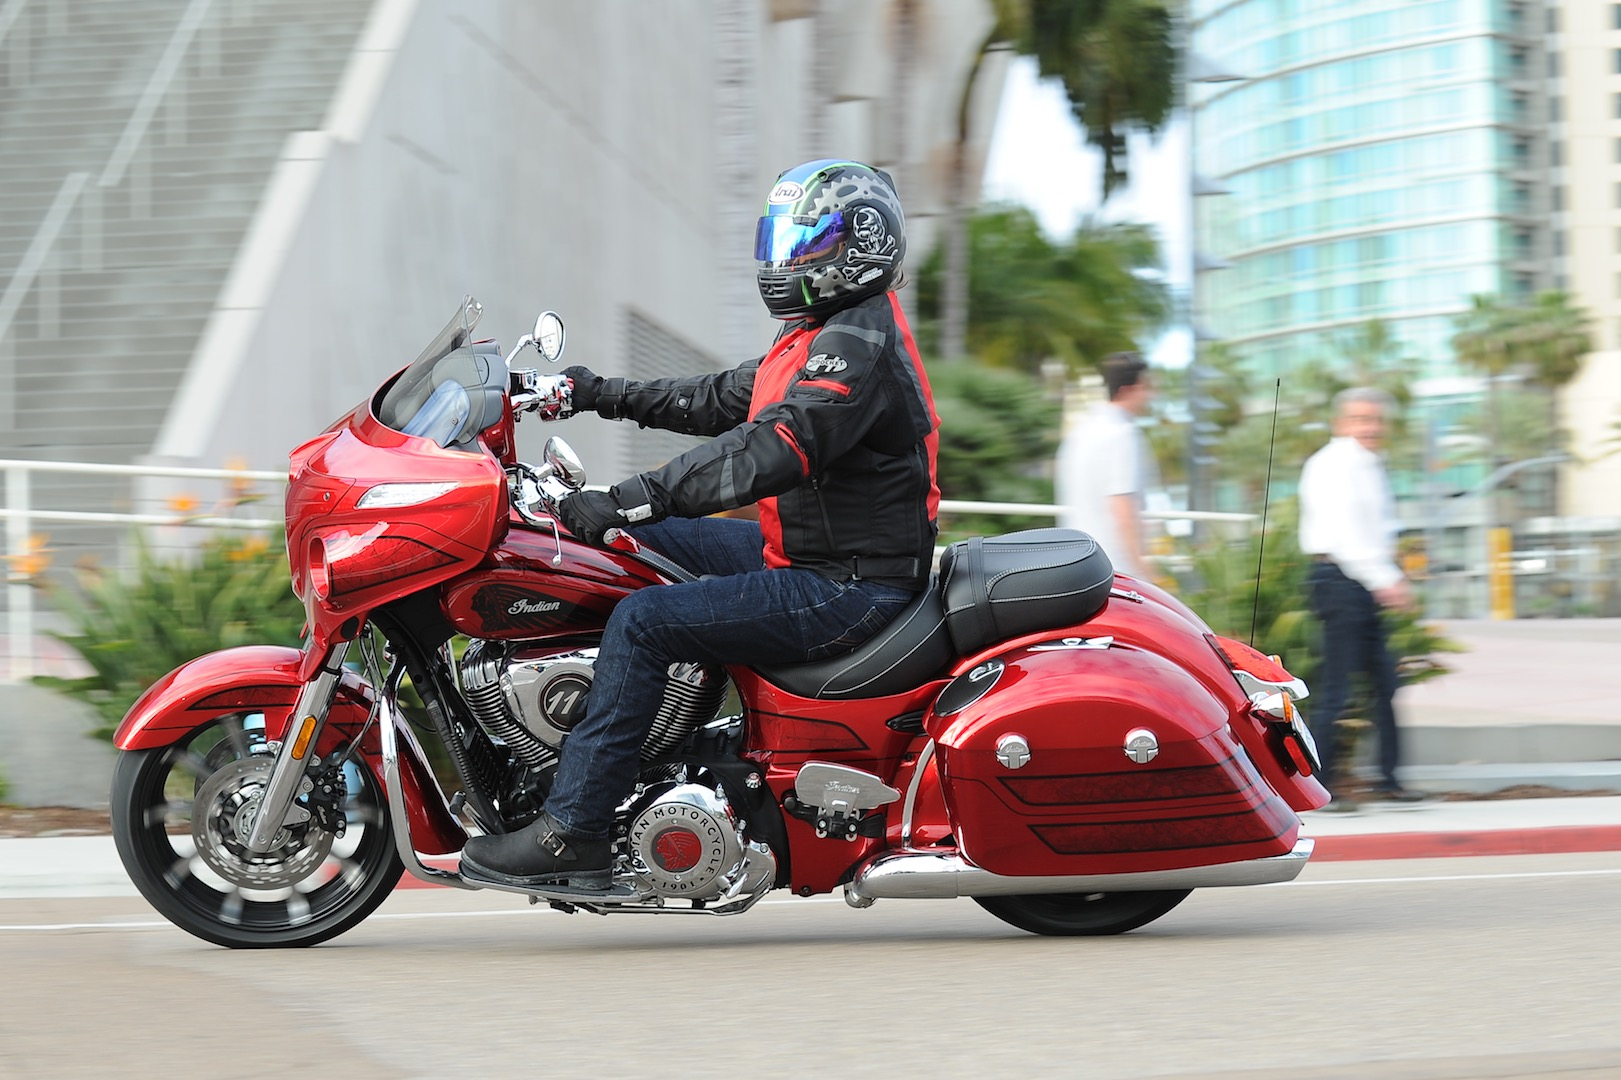 2017 Indian Chieftain Elite Review - Urban